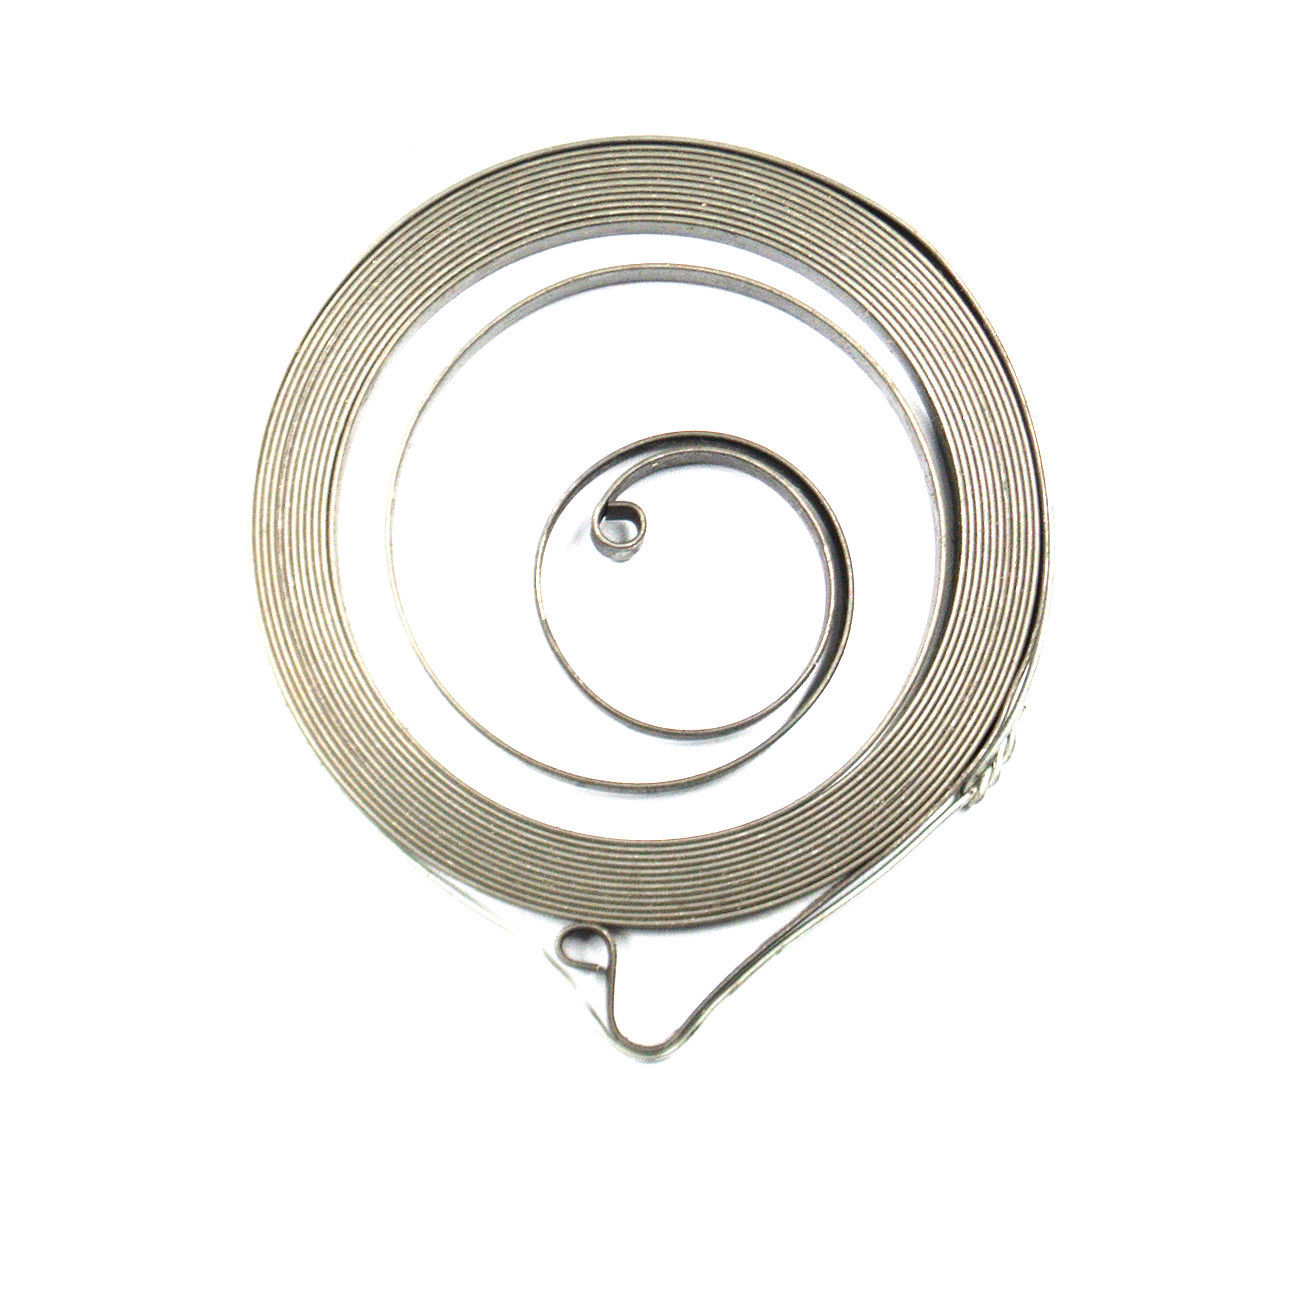 Recoil Starter Spring Cover Washer For Husqvarna 288 281 272 268 266 61 Chainsaw